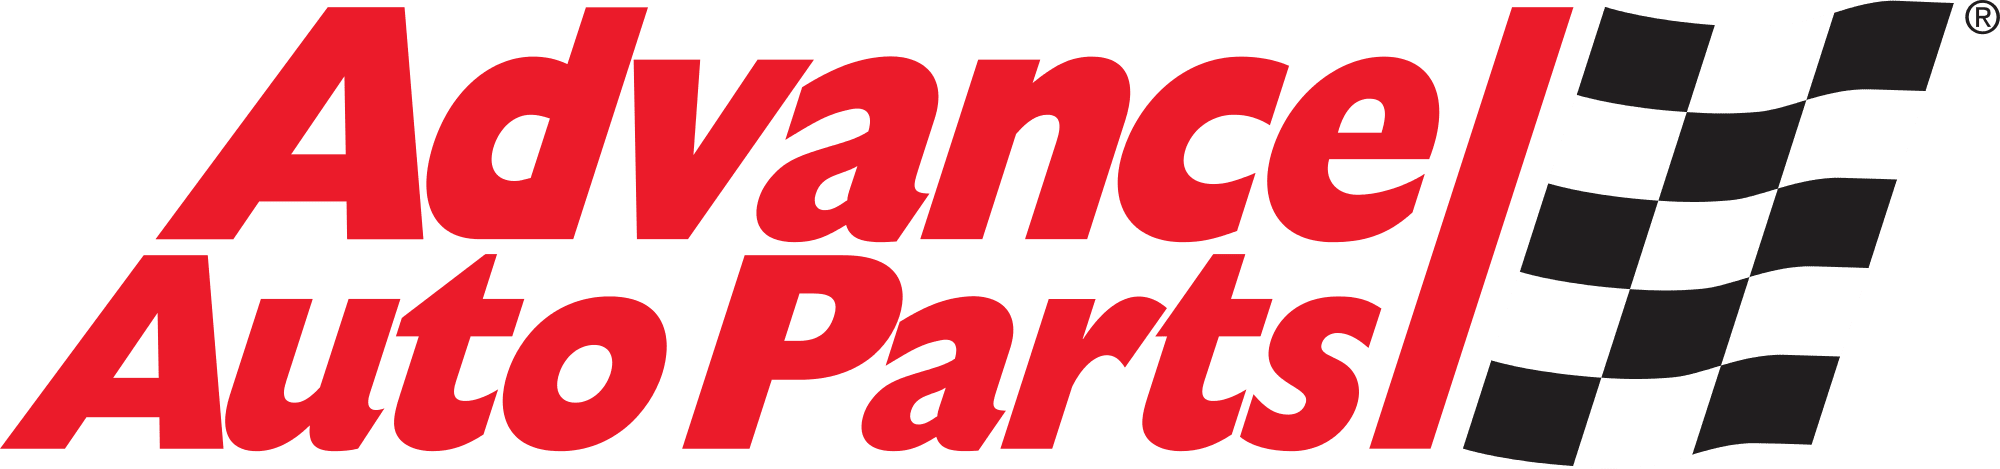 Advance Auto Parts Full Color Logo